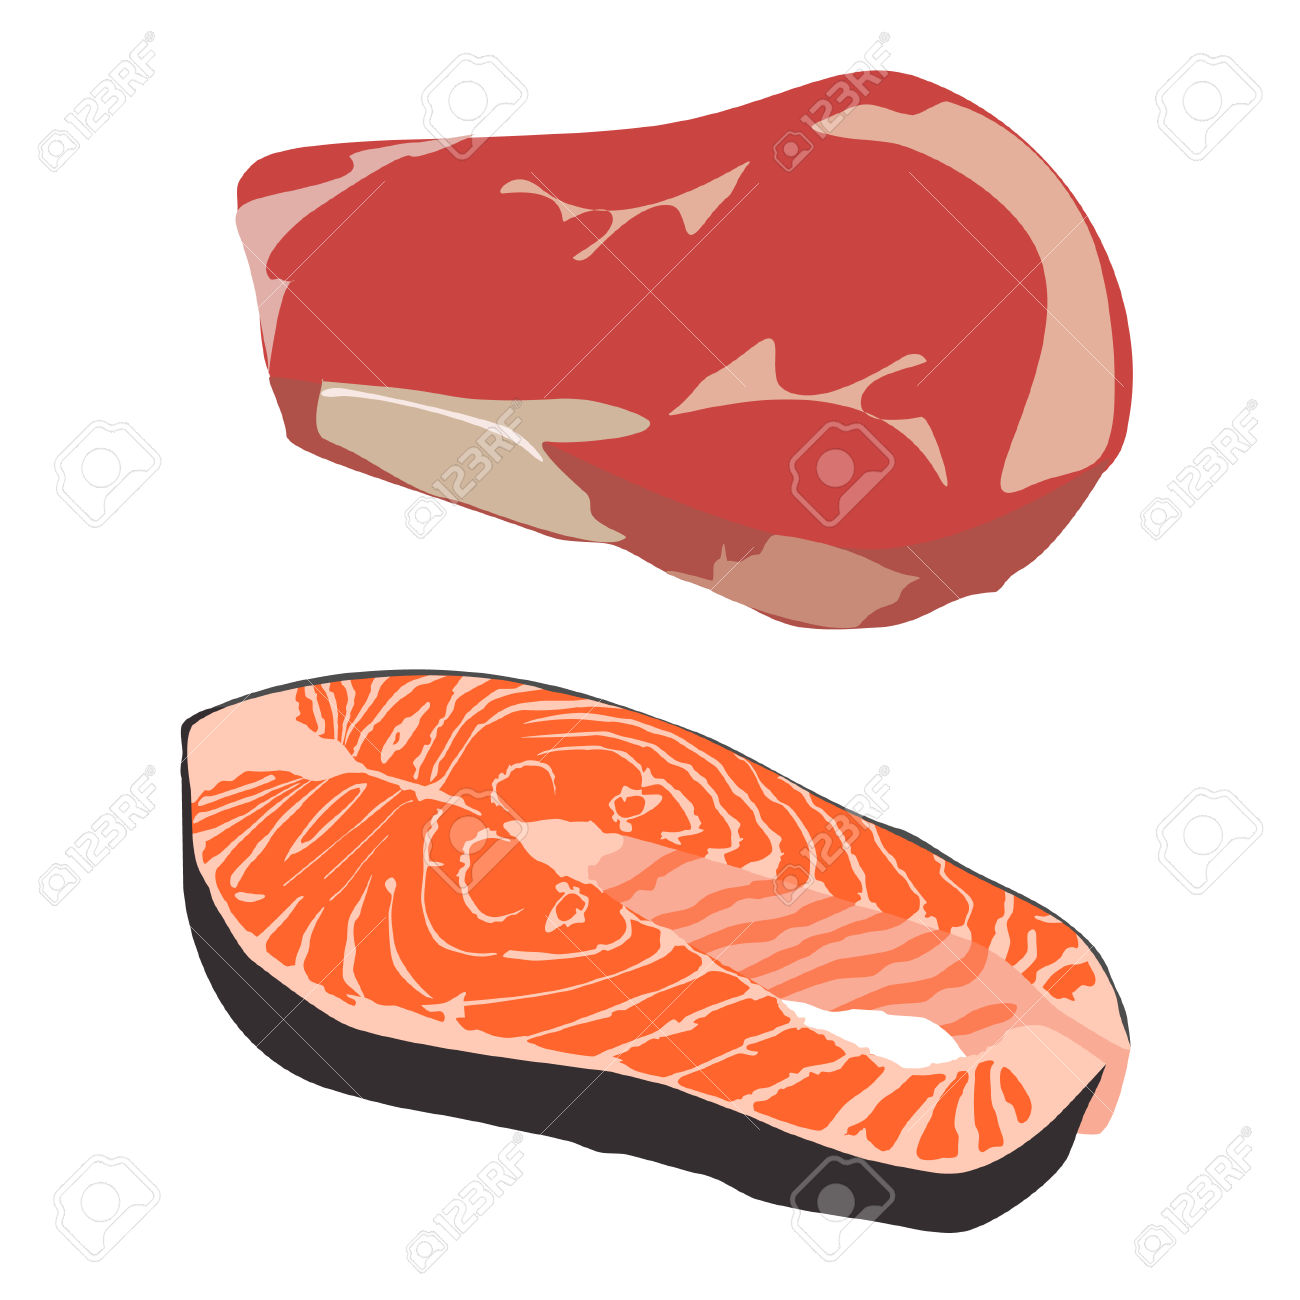 Raw Beef Steak And Salmon Fish Steak Vector Isolated, Fish Fillet.